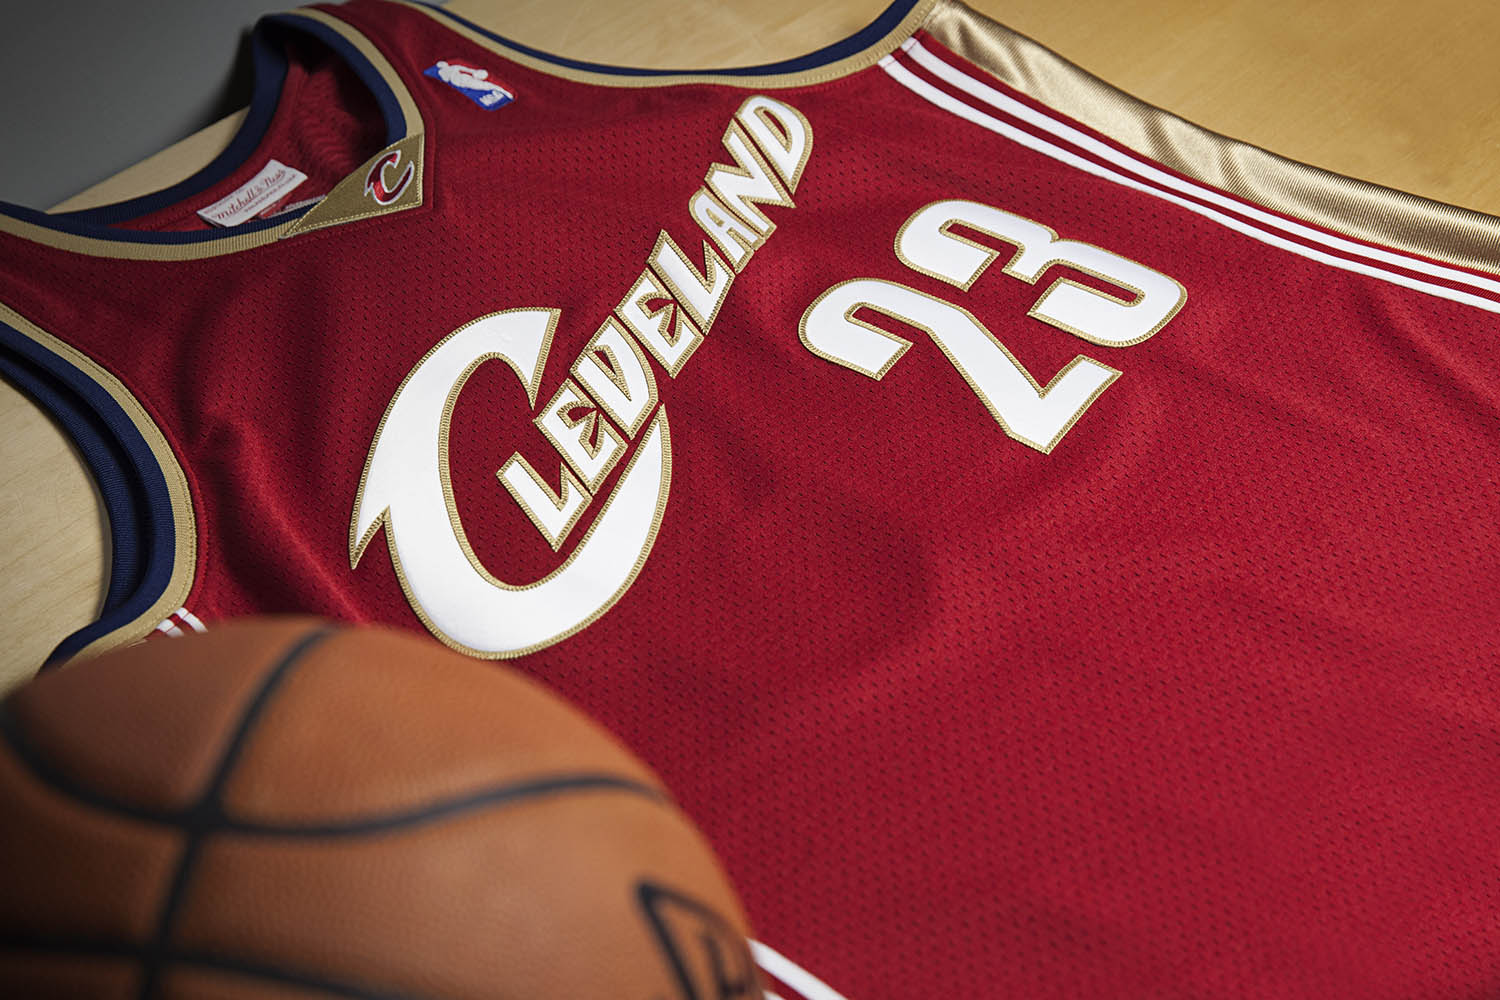 new product c86b9 fbcd9 Mitchell & Ness LeBron James Rookie Jersey | Sole Collector